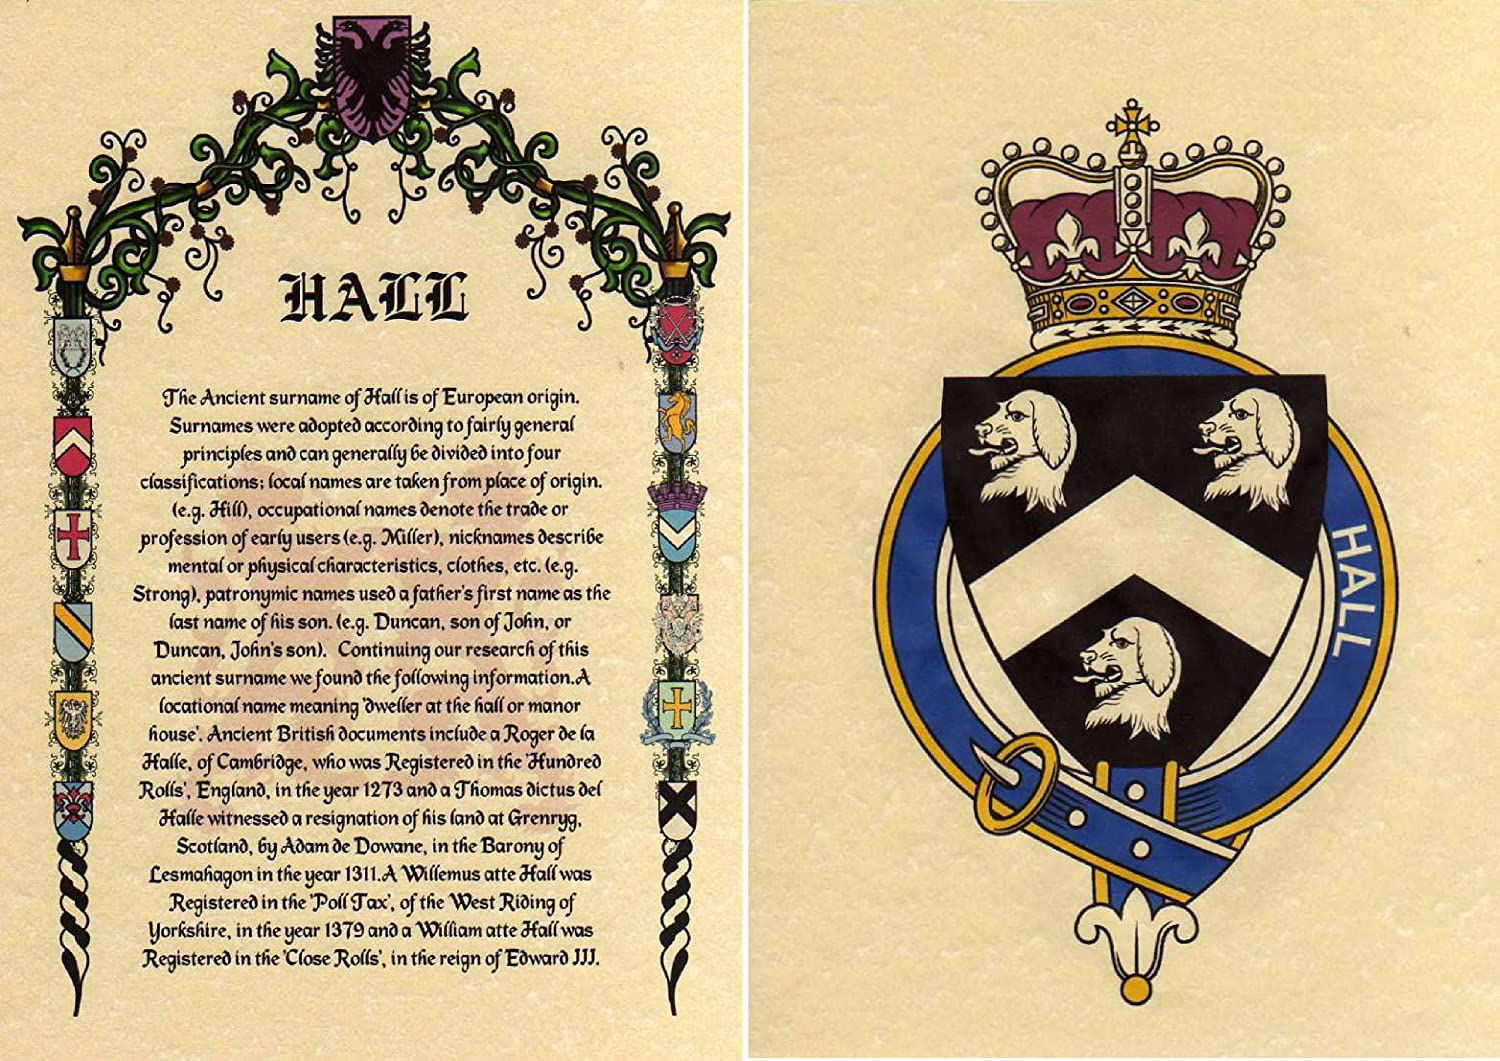 Family crest symbols last name images symbol and sign ideas surname family name meaning origin coat of arms crest prints a surname family name meaning origin biocorpaavc